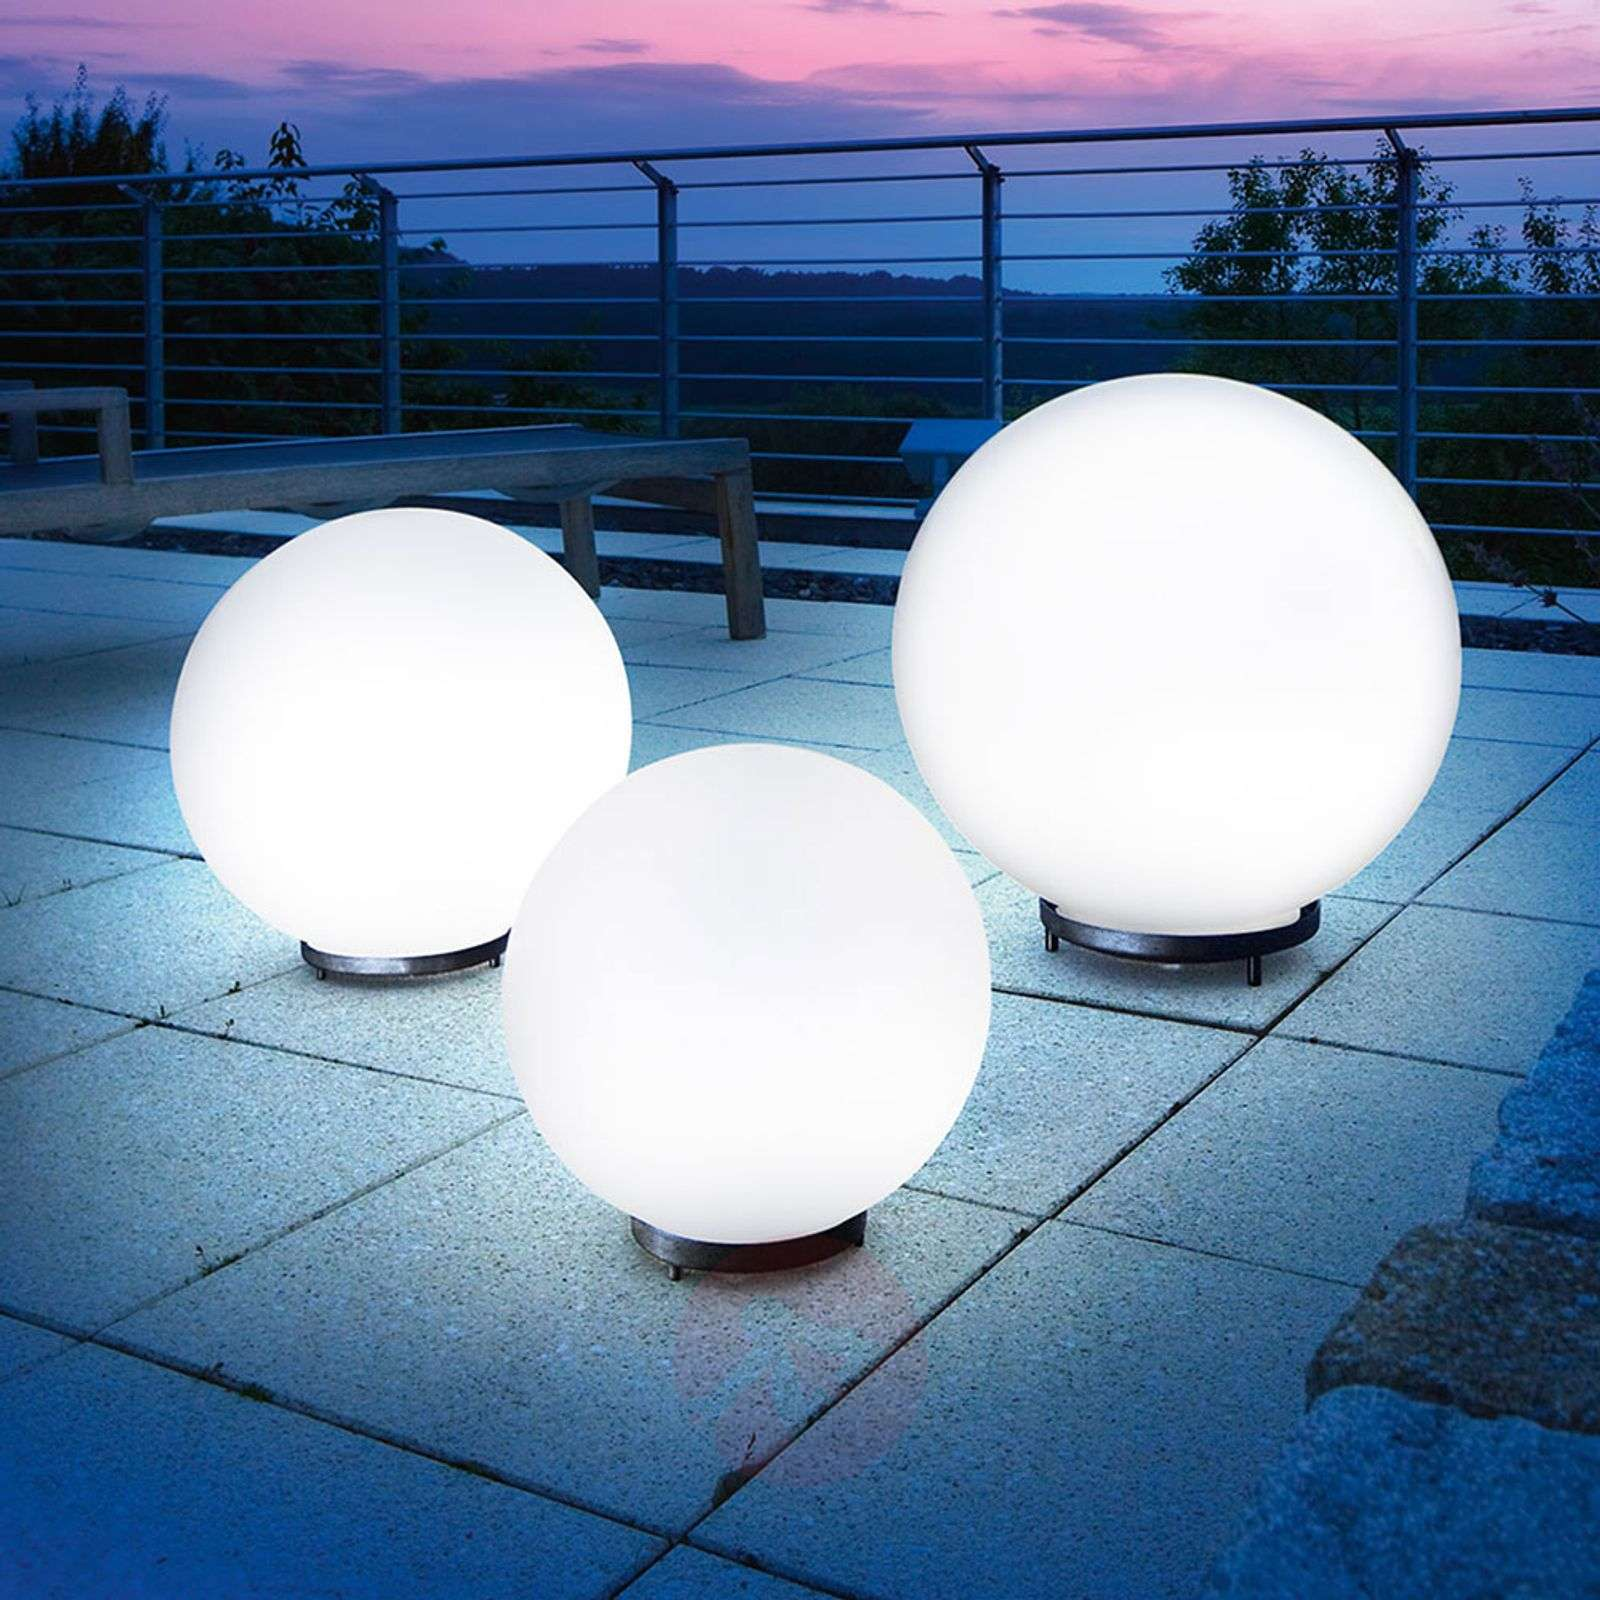 Lámpara esférica solar decorativa Mega Ball-3012224X-01